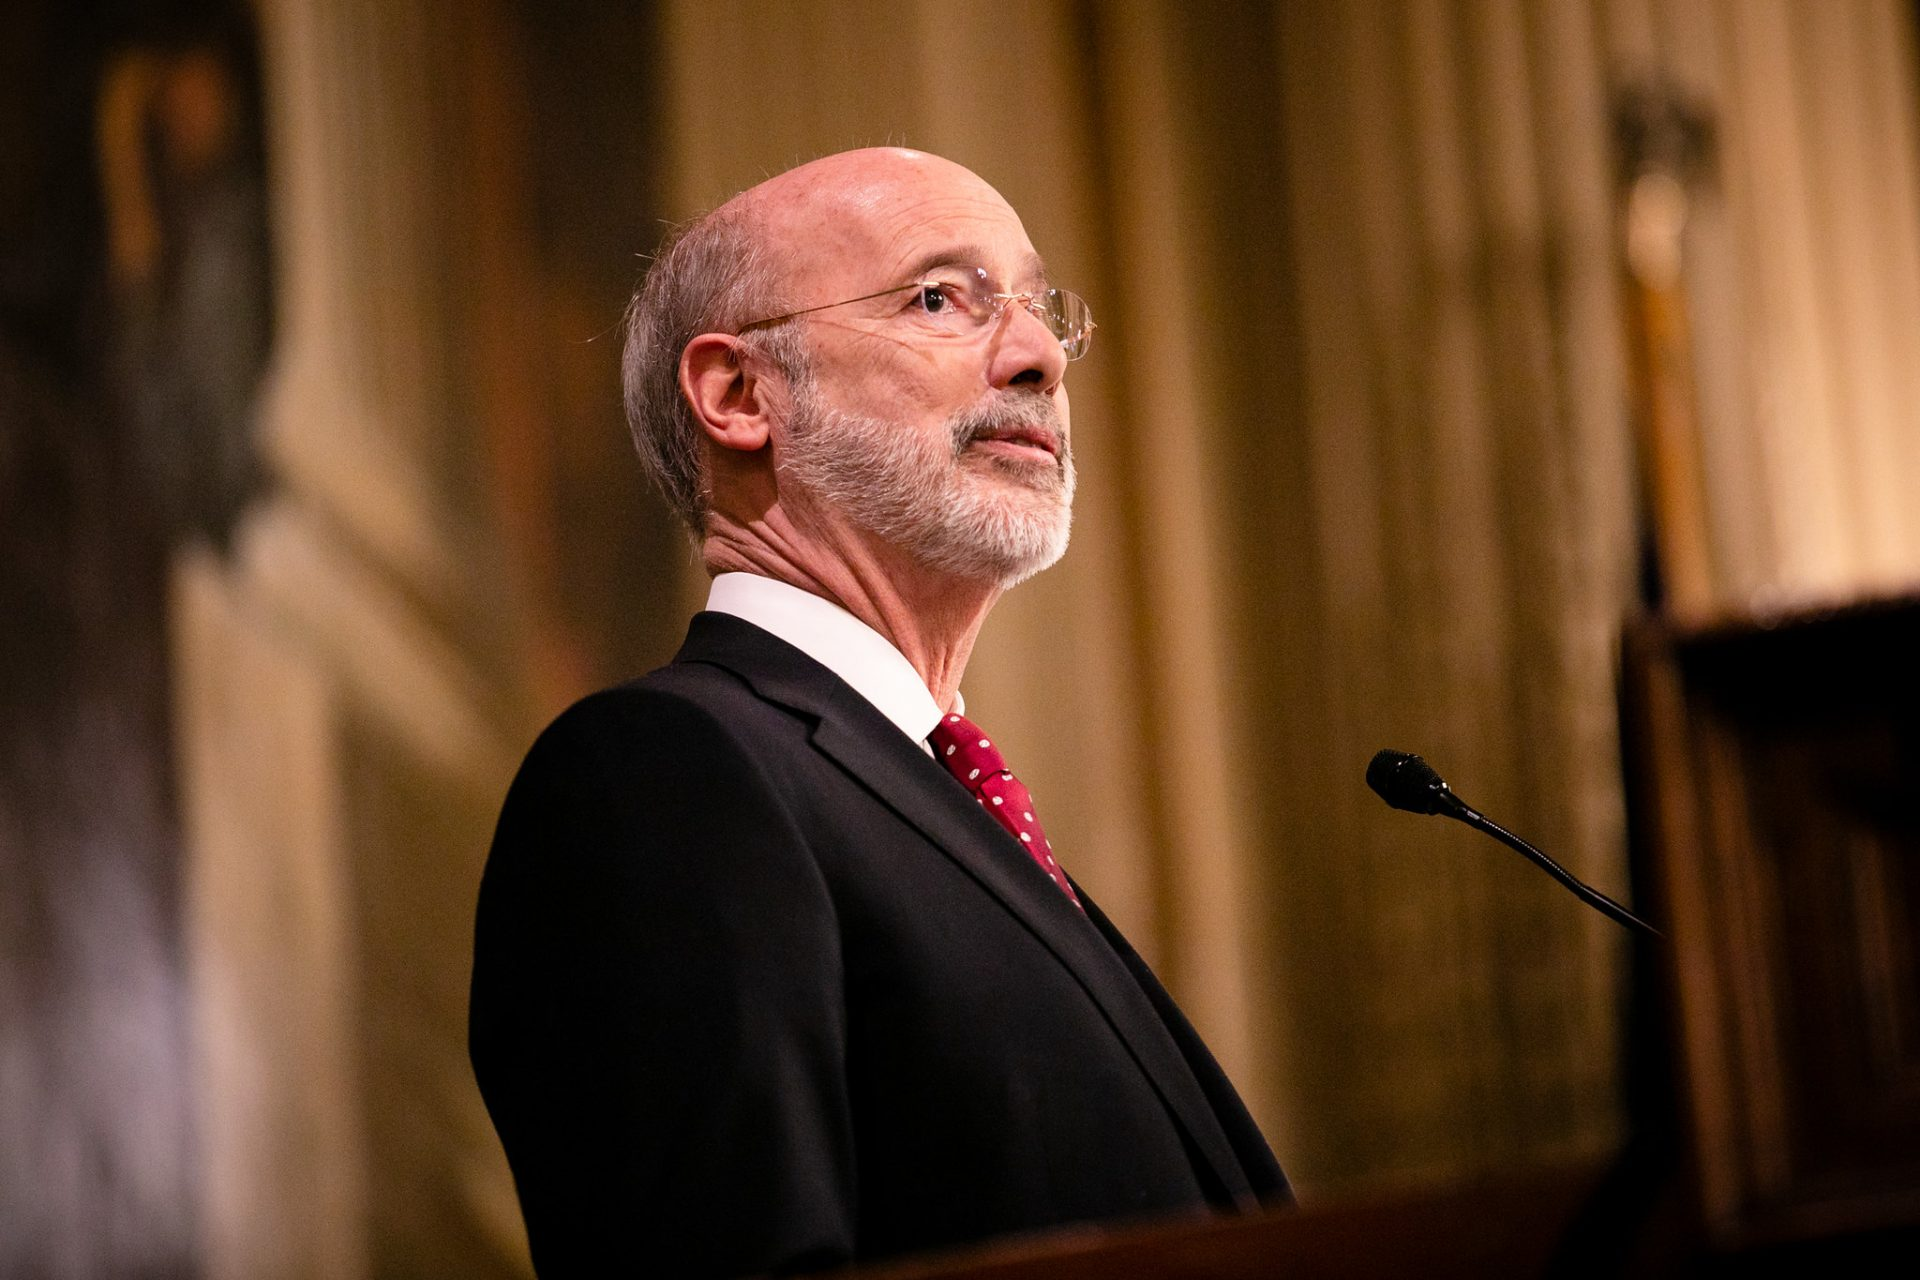 Governor Tom Wolf delivers his 2020-21 budget address in Harrisburg on Tuesday, February 4, 2019.